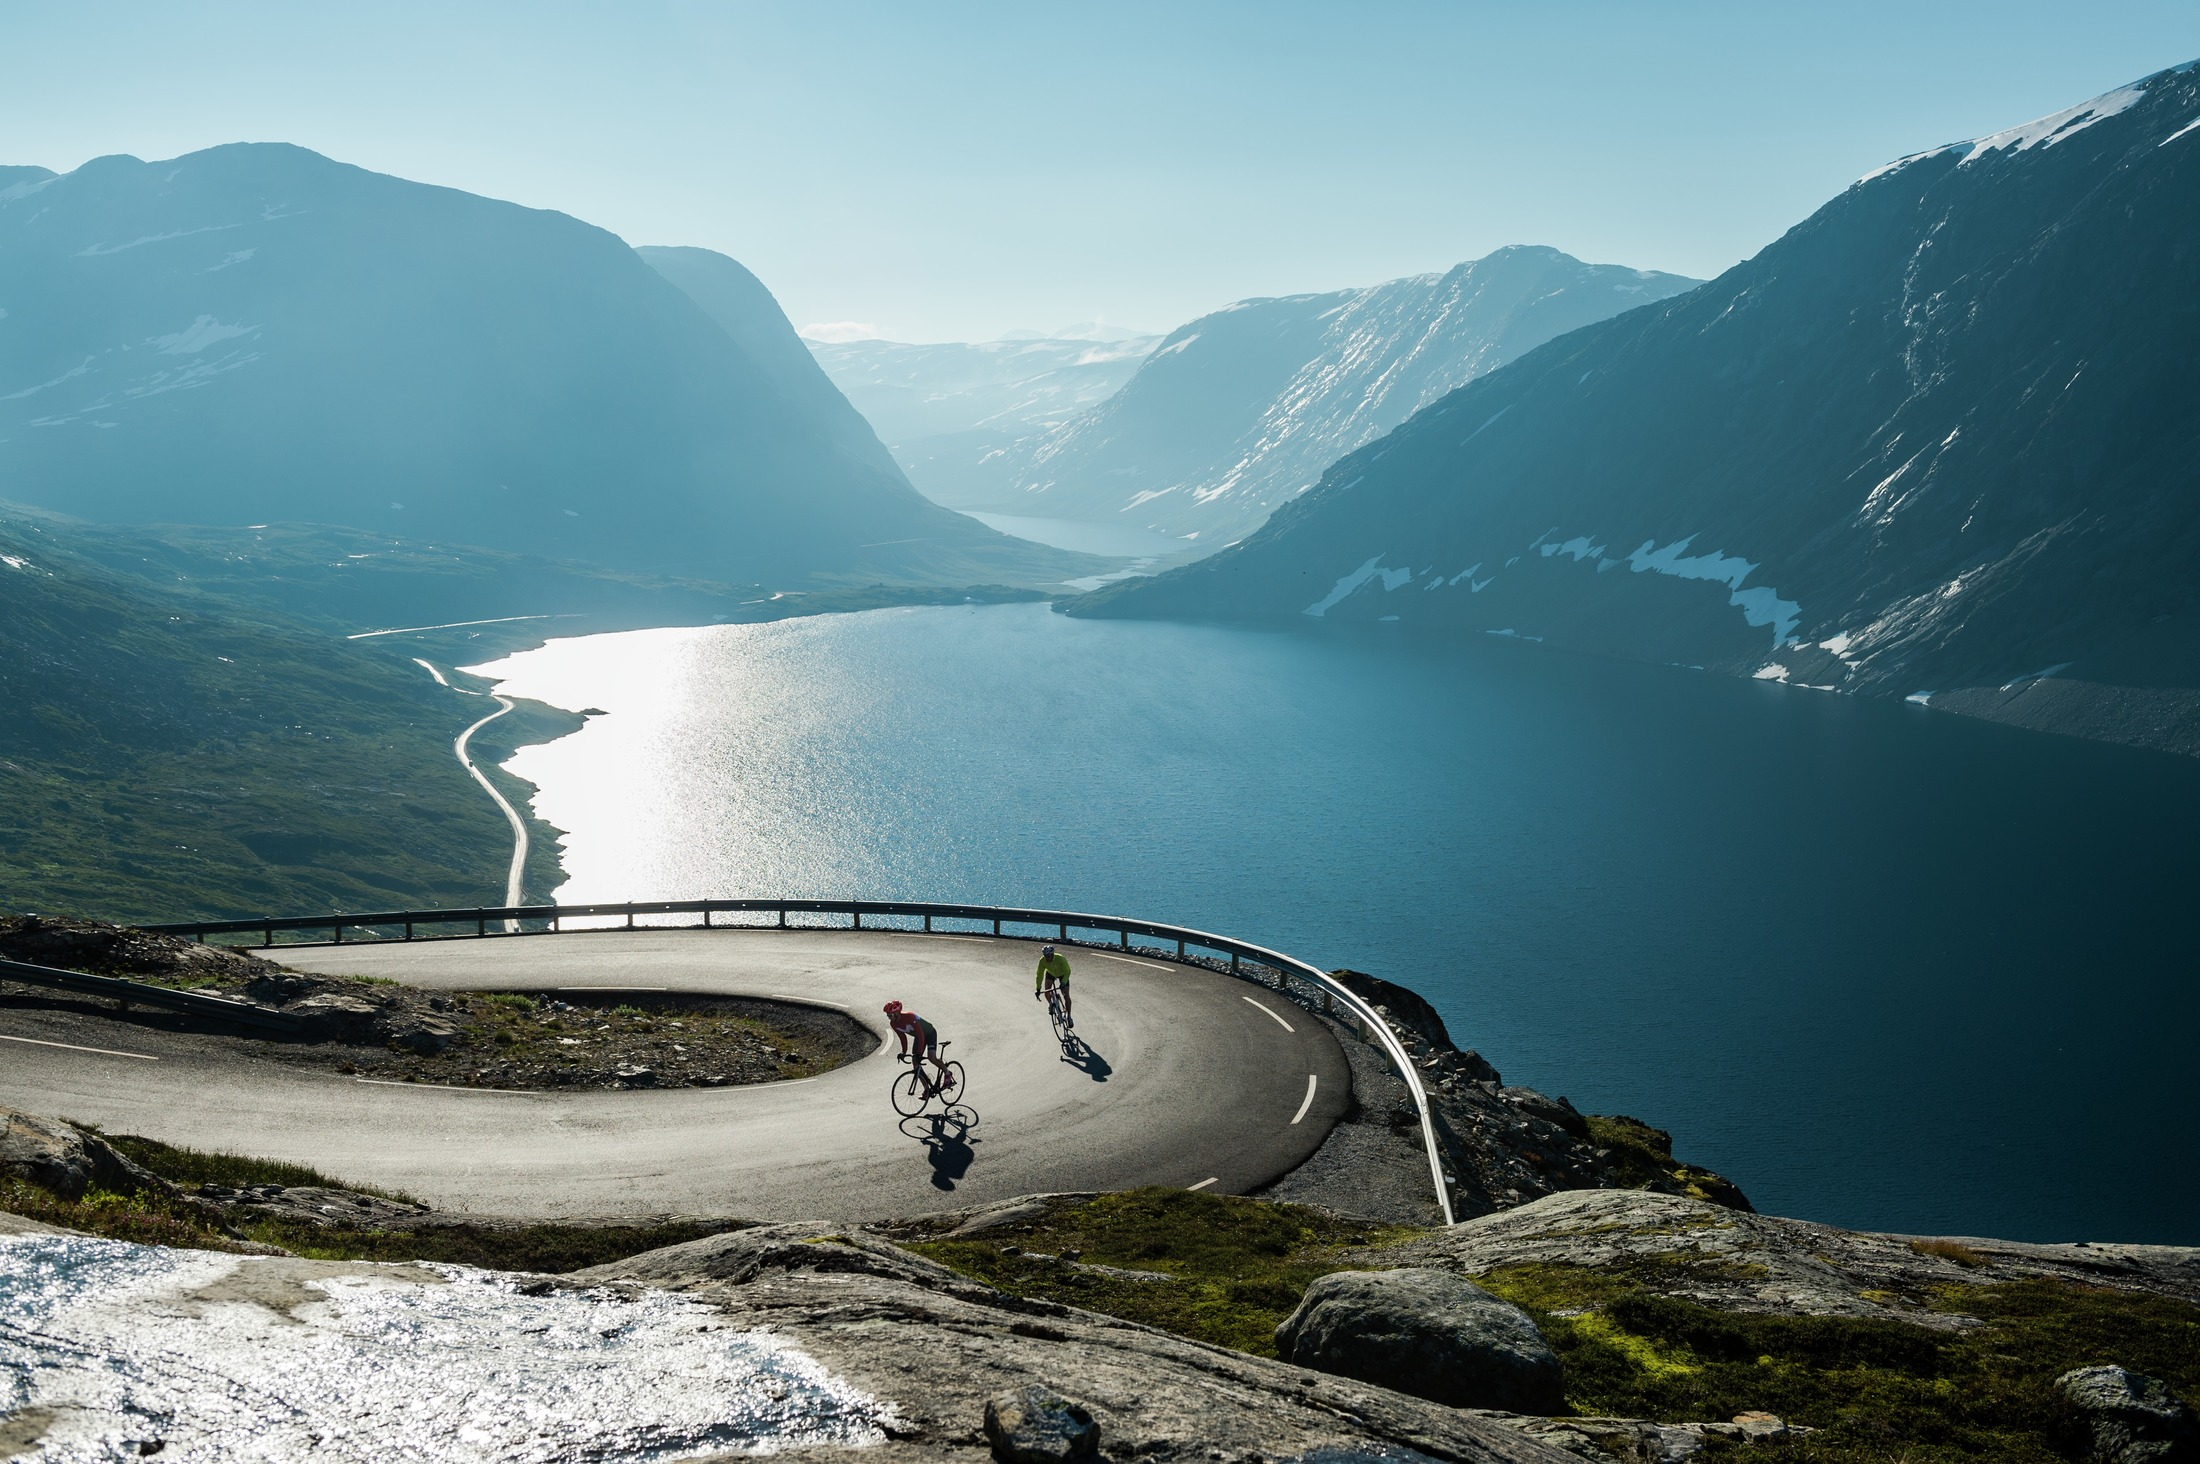 Road-cycling-Geirangerfjord-102015-99-0038_2200